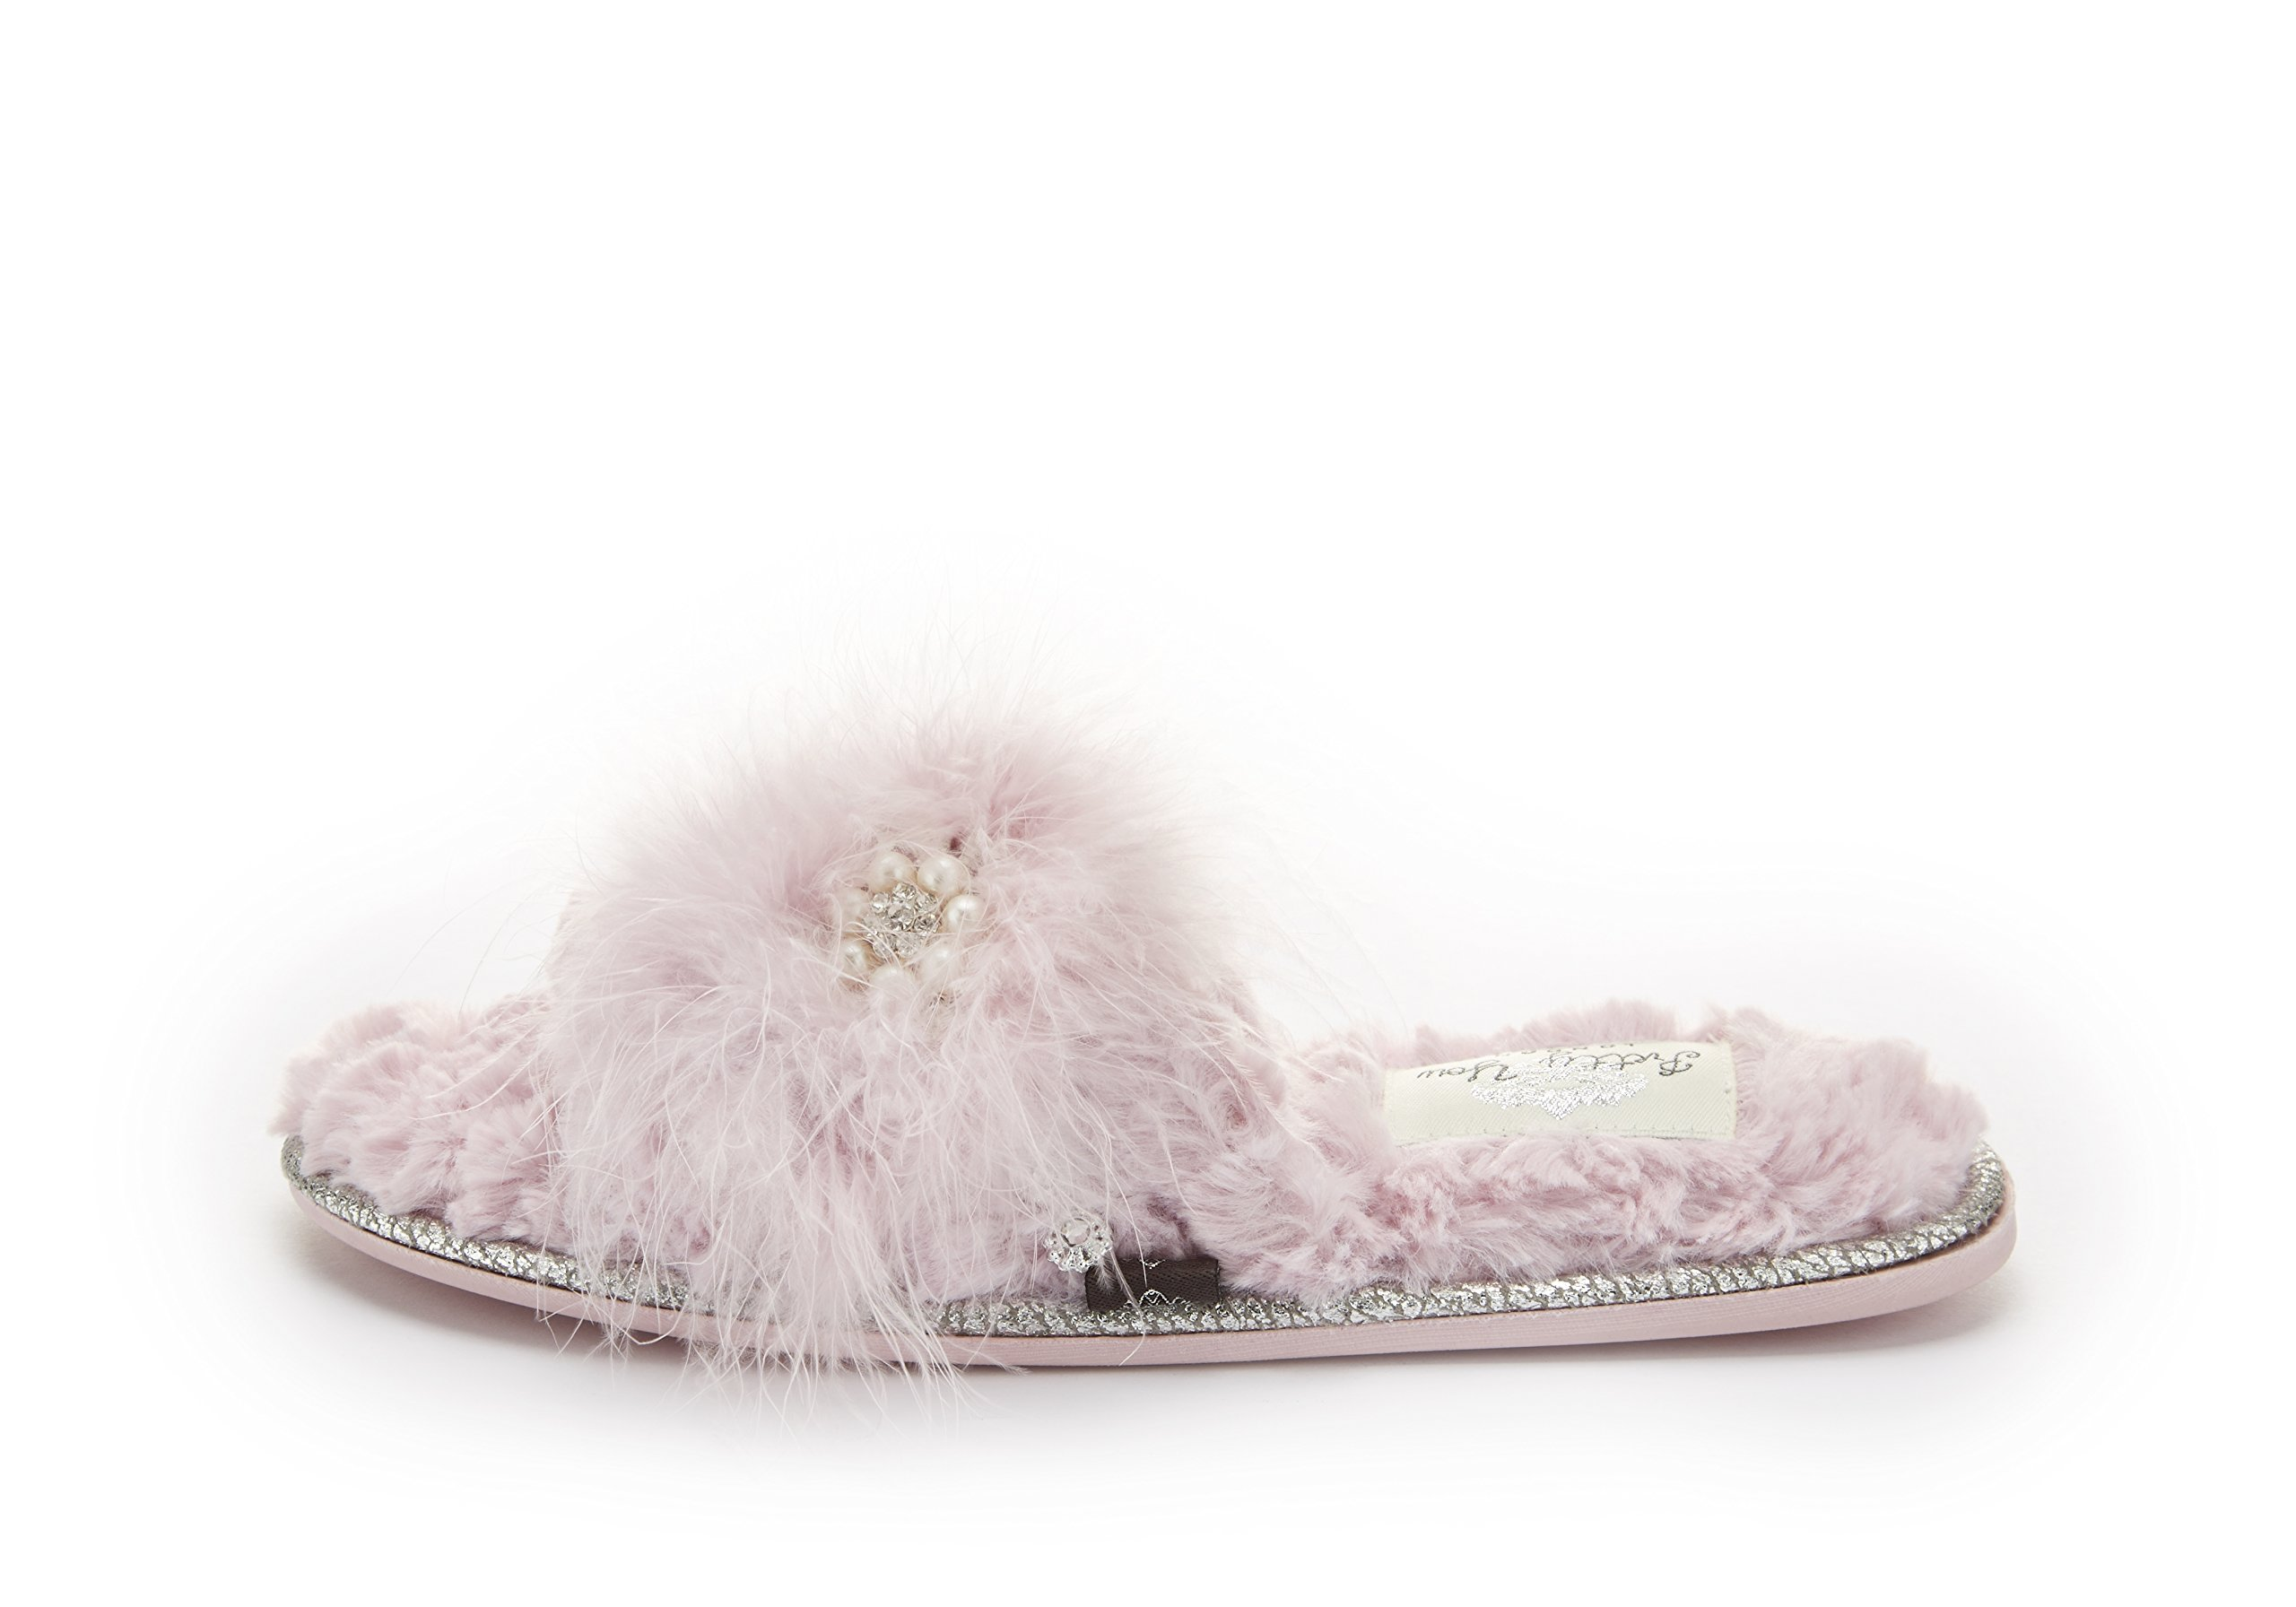 Pretty You London Women's Footwear One Band Pink Slippers Odette (Medium)